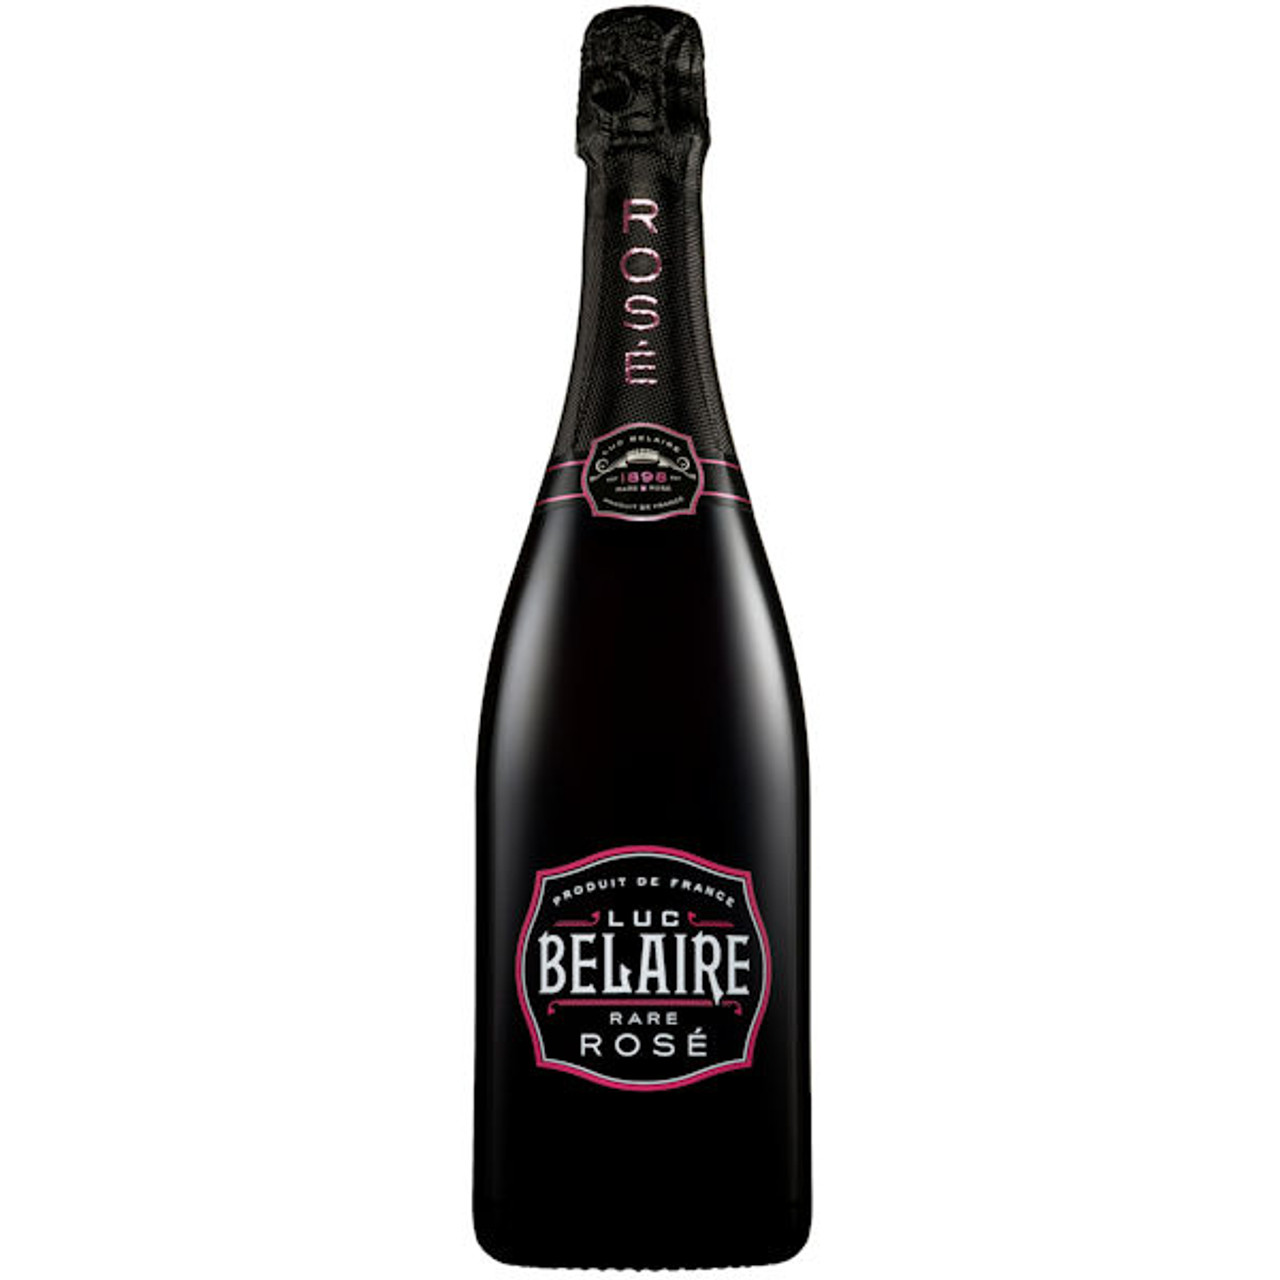 Luc Belaire Rose NV